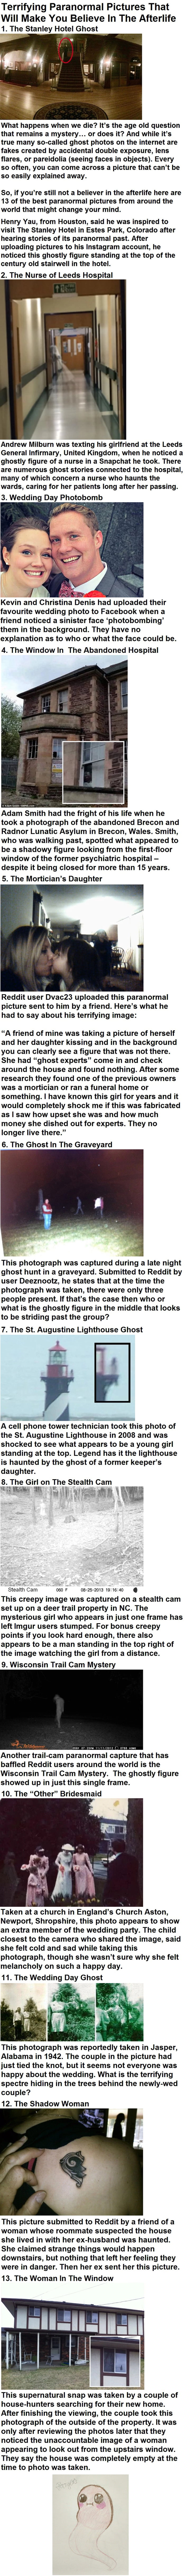 Terrifying Paranormal Pictures That Will Make You Believe In